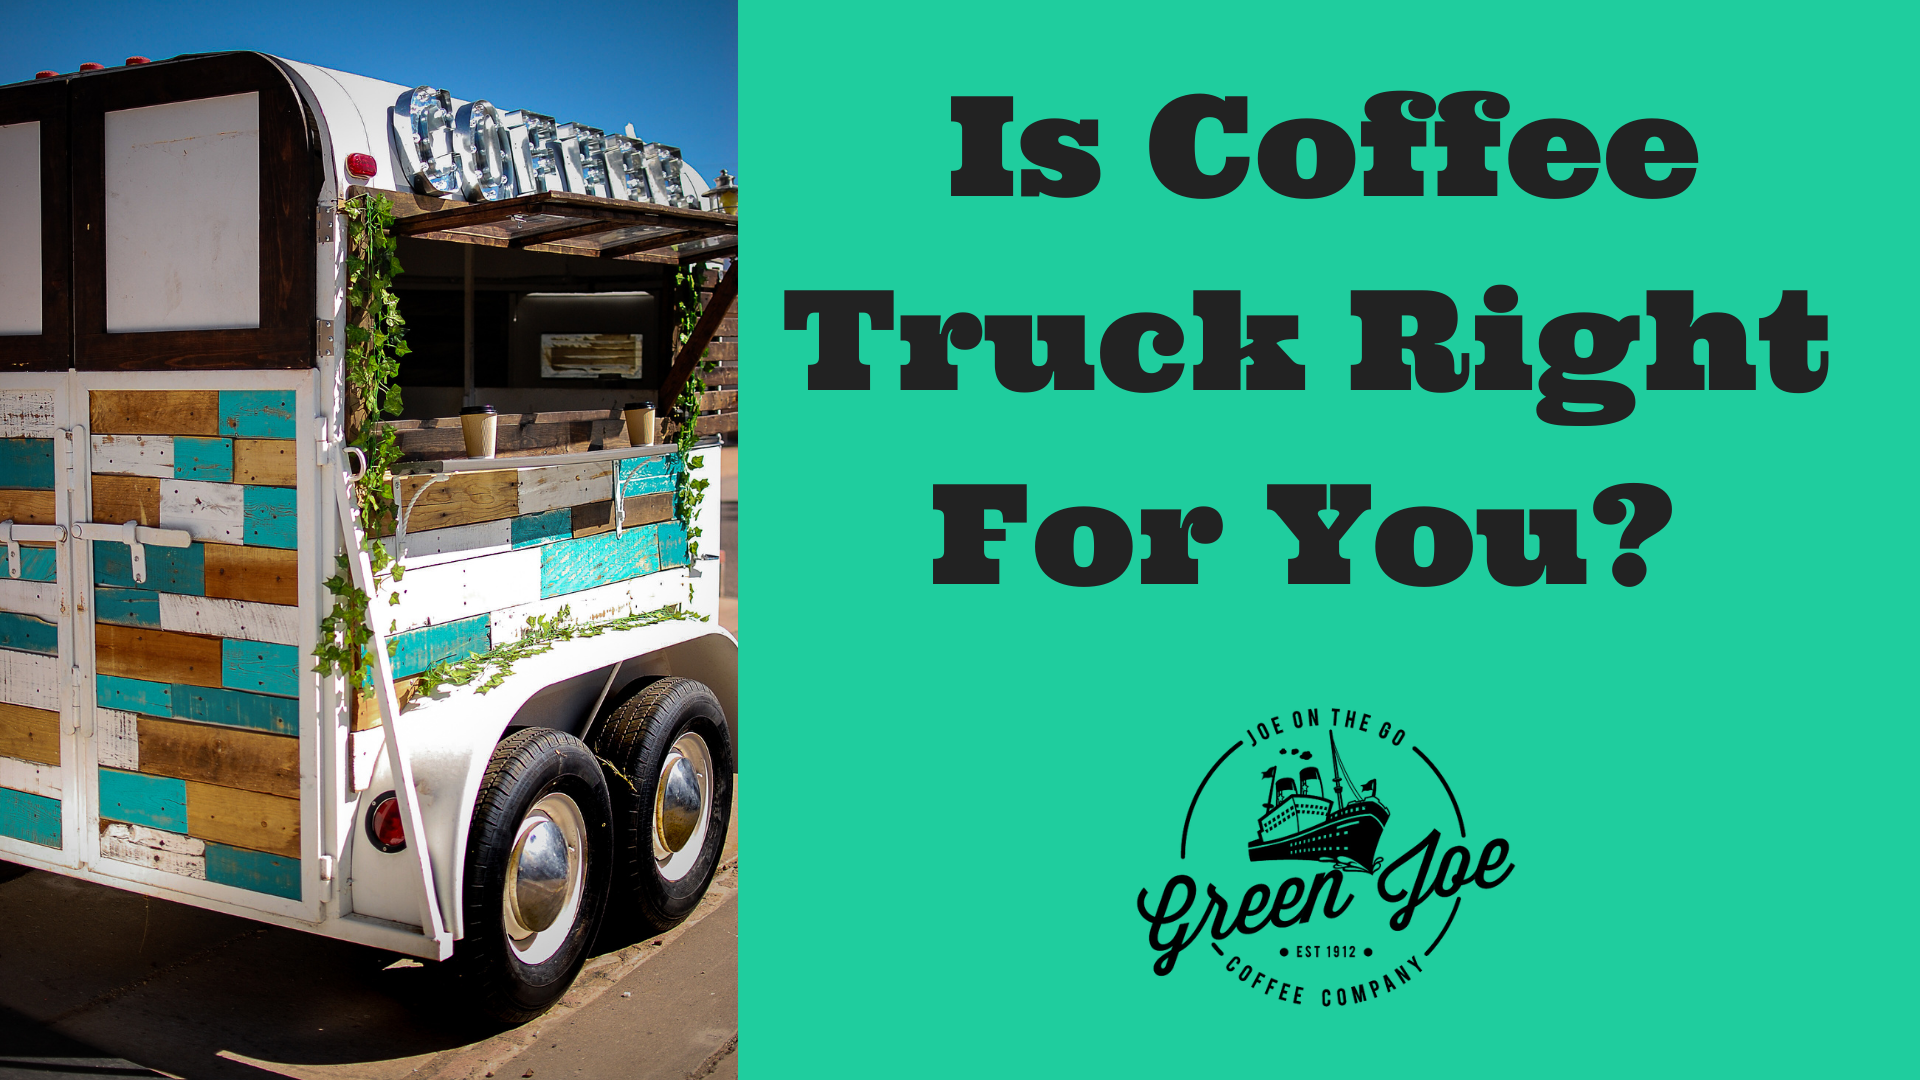 How to Start a Coffee Trailer: Pros and Cons. Should I? Initial Investment to Full Time Coffee Shop